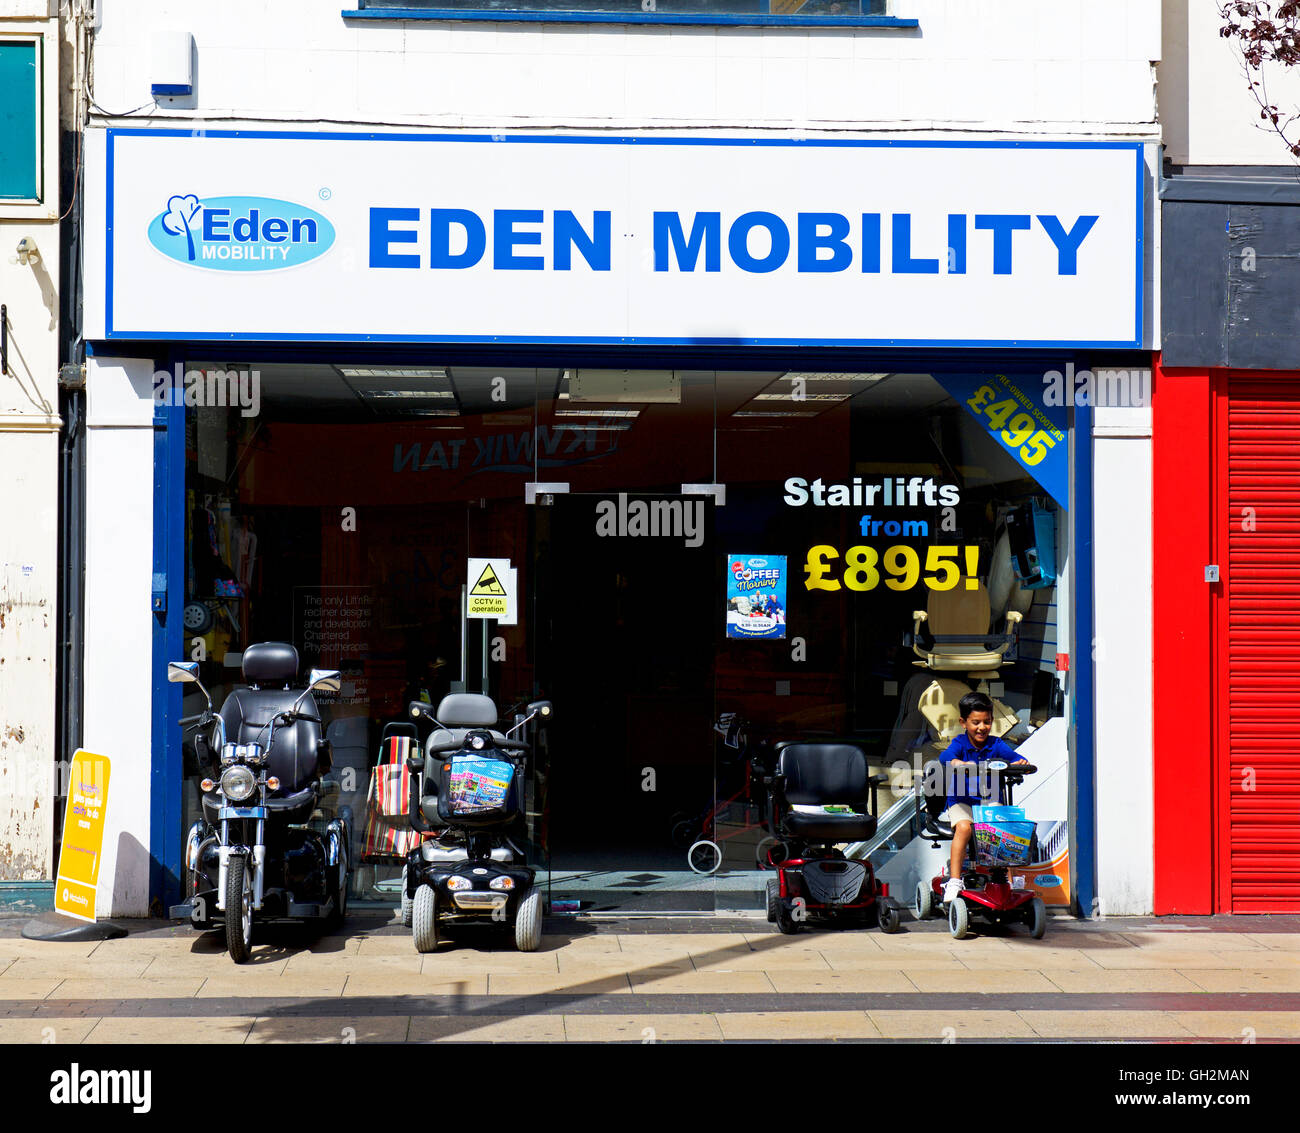 Shop - Eden - Mobilité Mobilité vente scooters, England UK Photo Stock